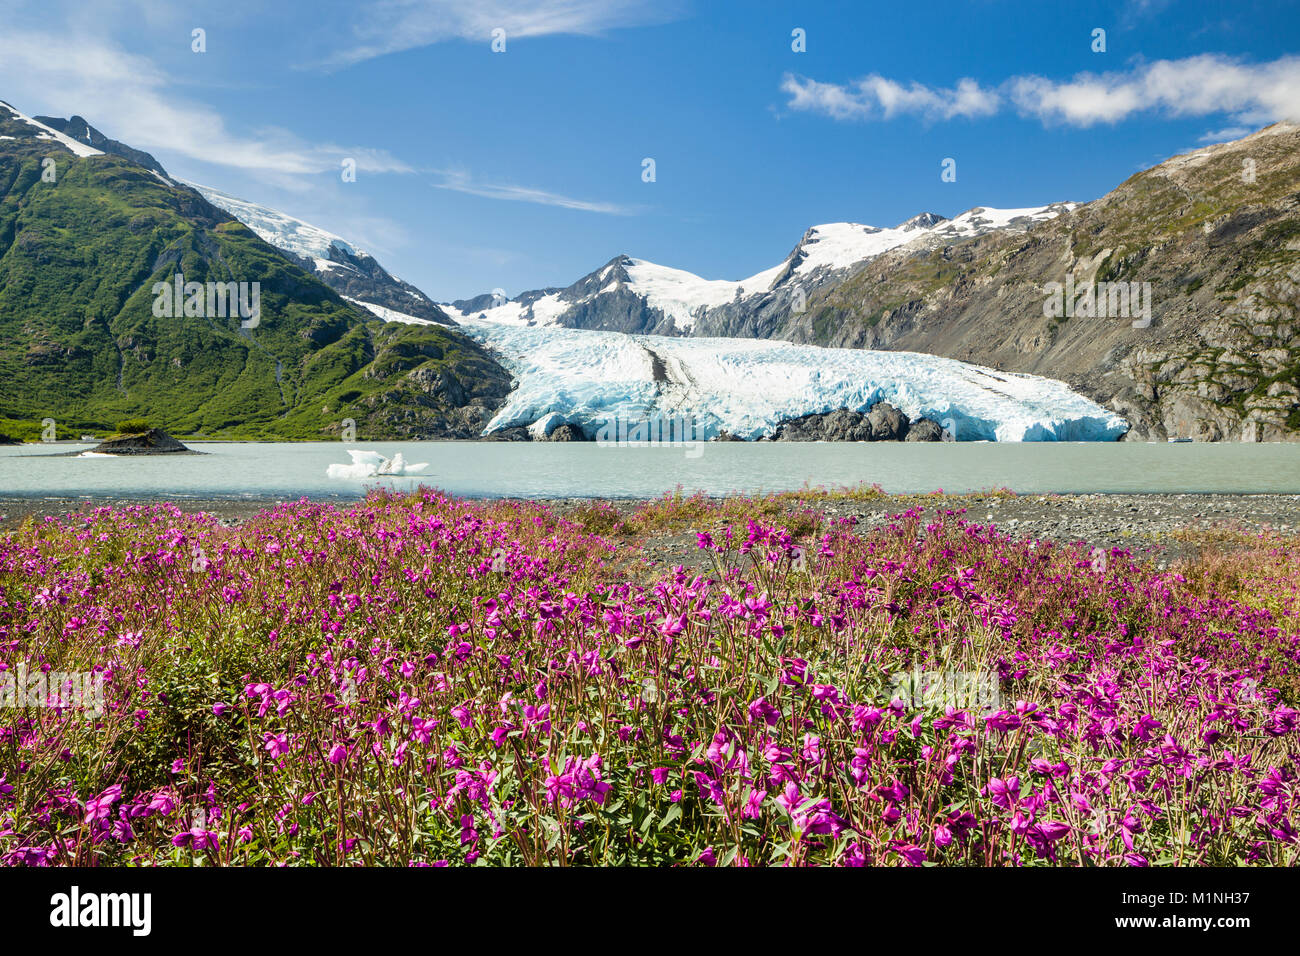 Dwarf Fireweed lines the shore of Portage Lake with Portage Glacier in the background in the Chugach National Forest - Stock Image